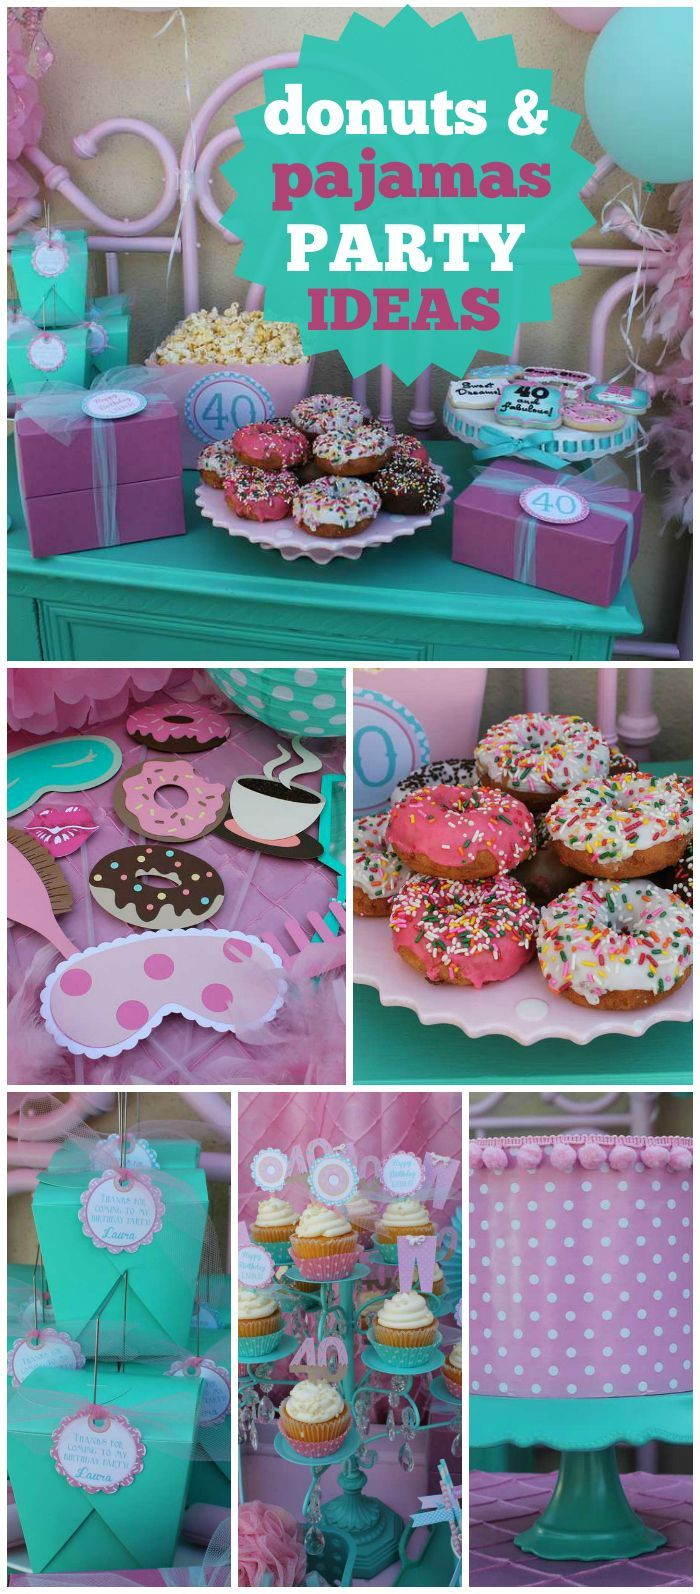 A donuts and pajamas 40th birthday party with sprinkled donuts, fun colors, wine, fun friends & pajama pants!